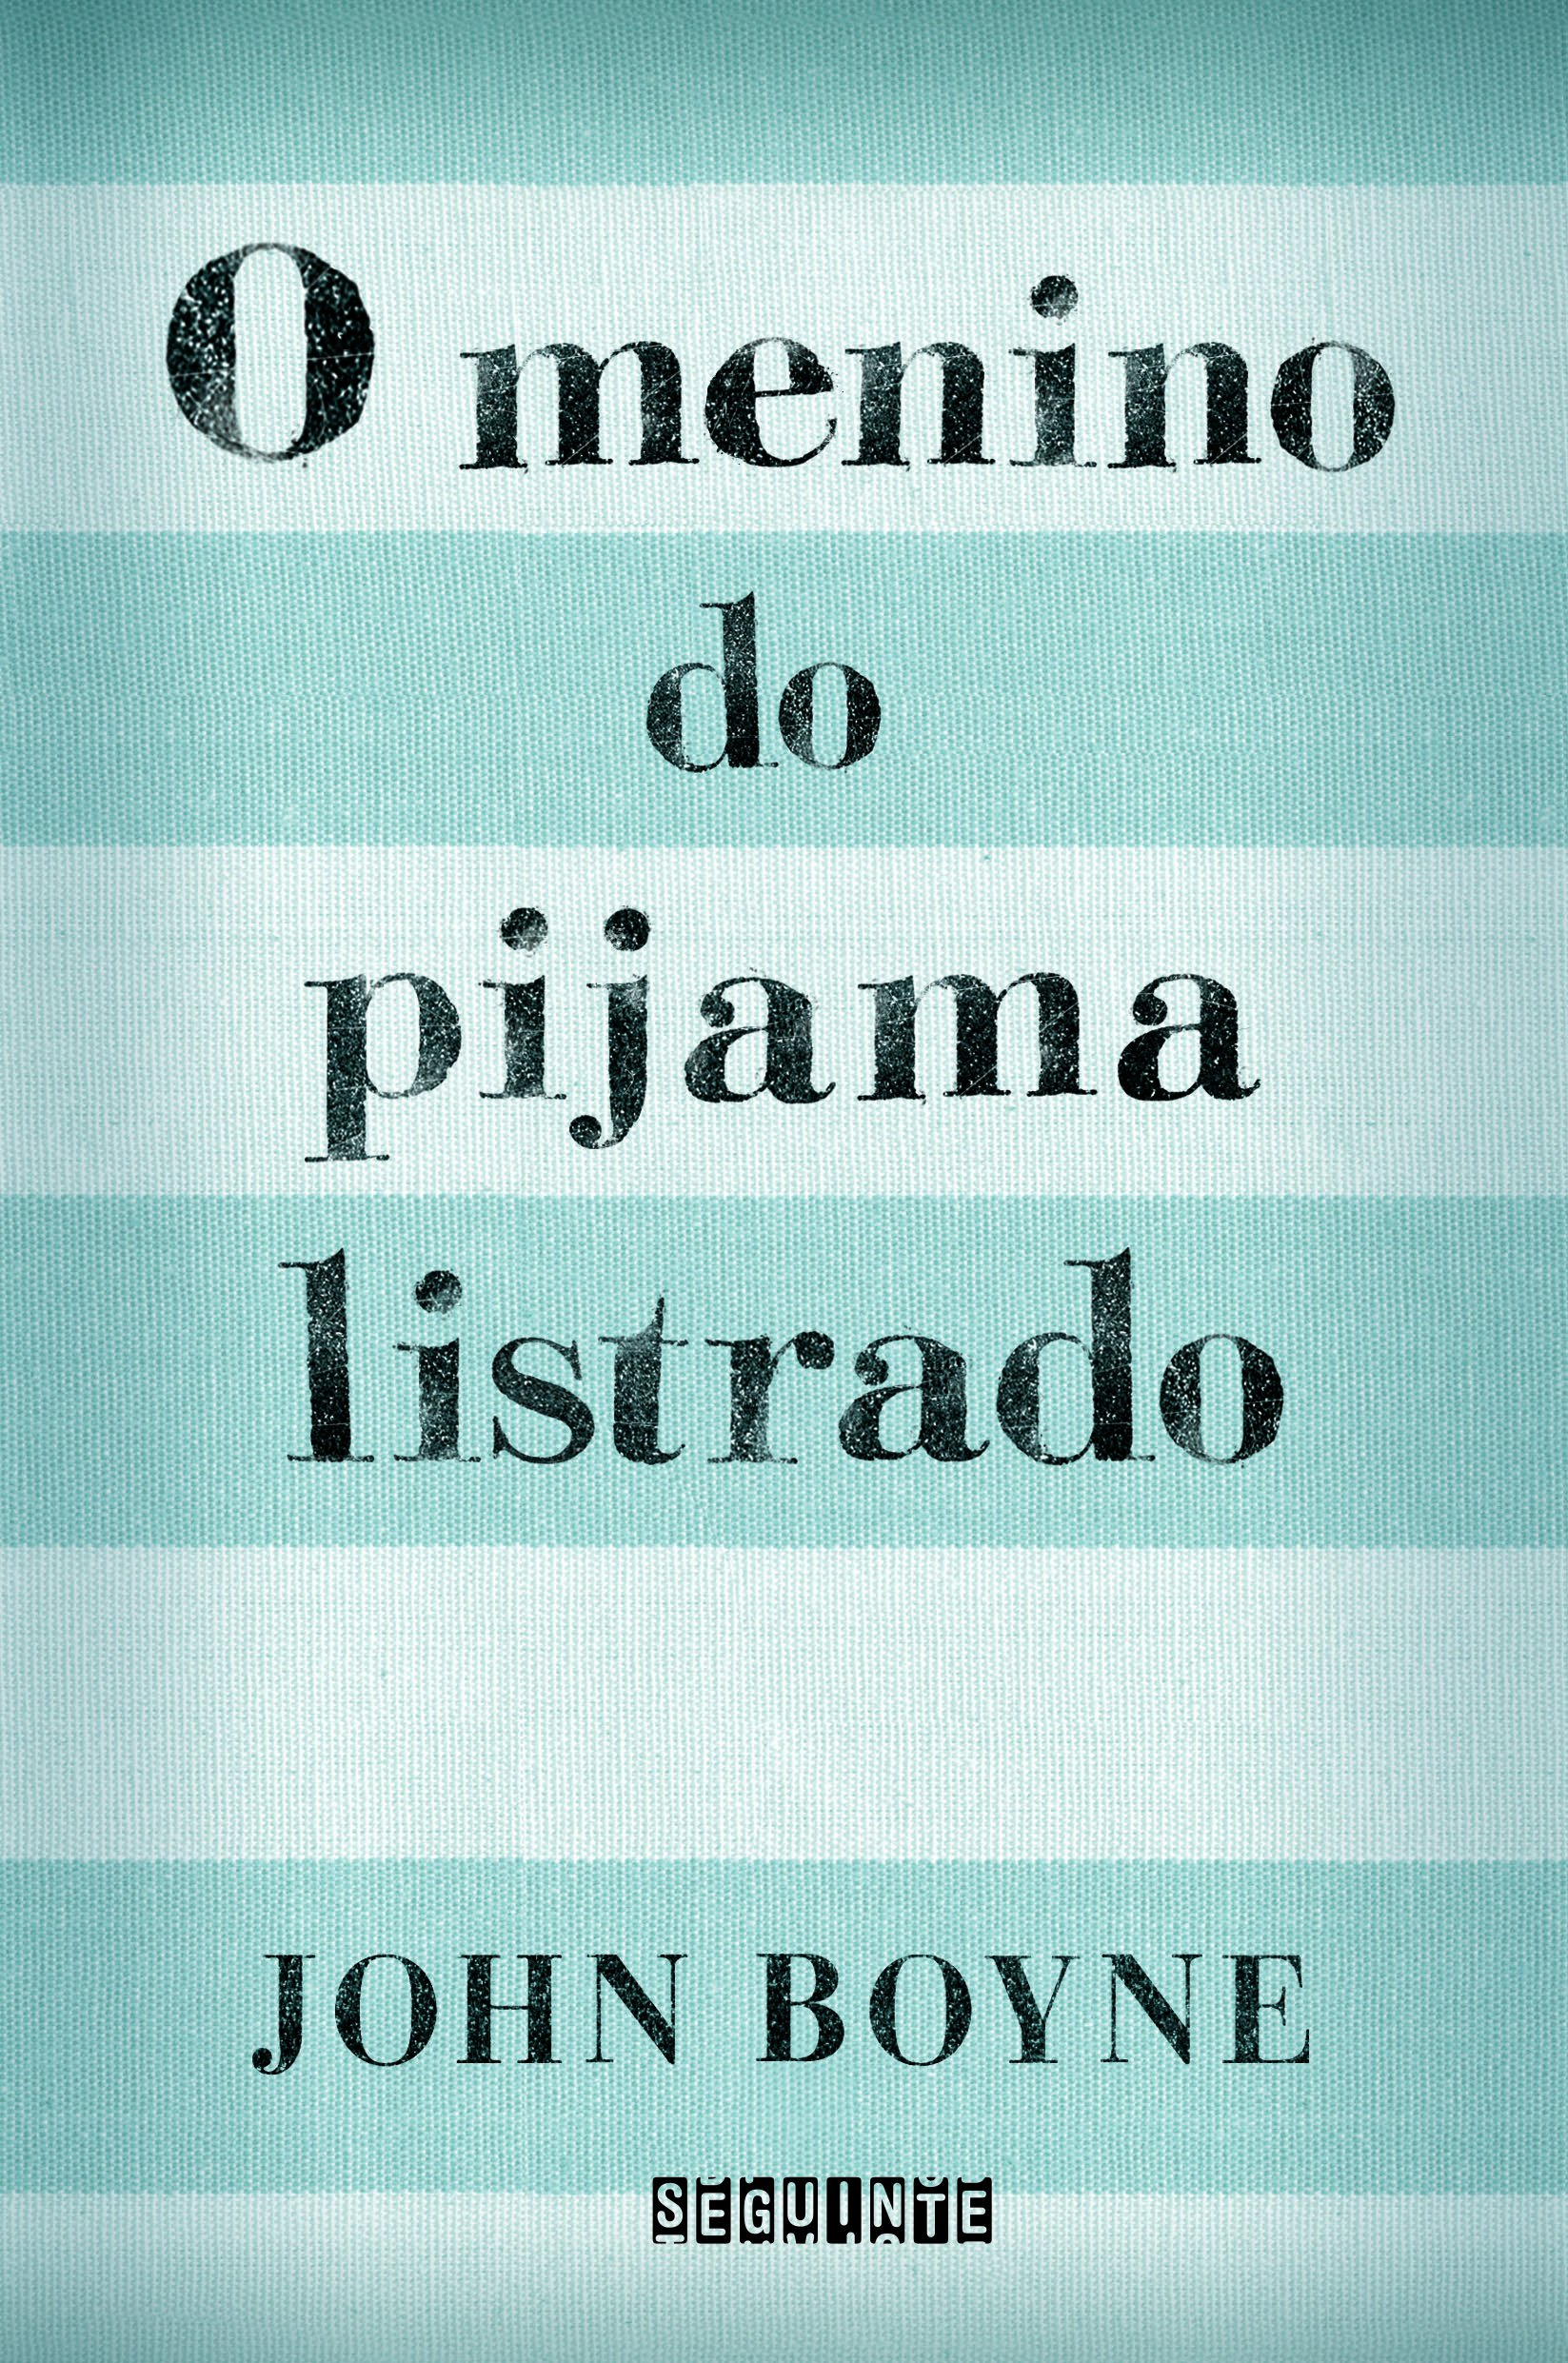 O Menino do Pijama Listrado: John Boyne: 9788535911121: Amazon.com: Books